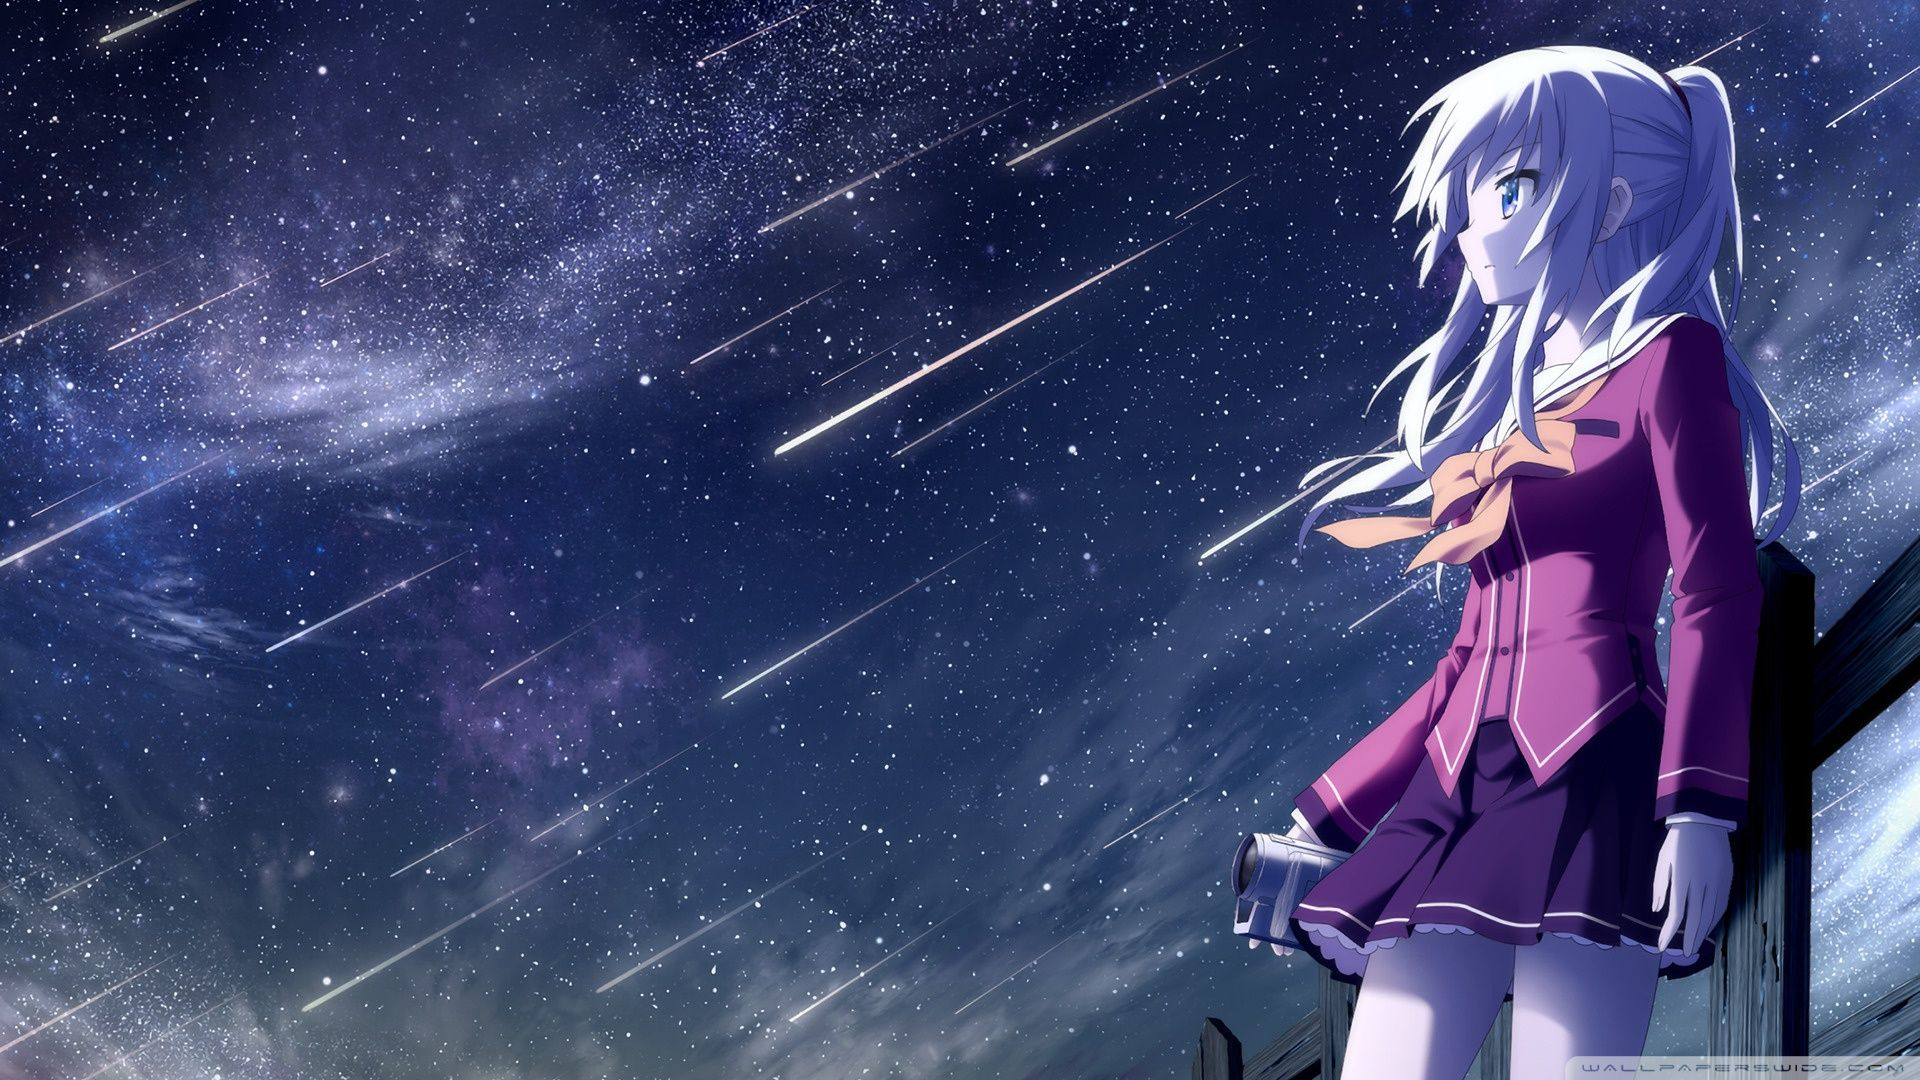 "1920x1080 Anime Manga Girl In Space Suit Wallpapers | Free Computer Desktop ..."">"